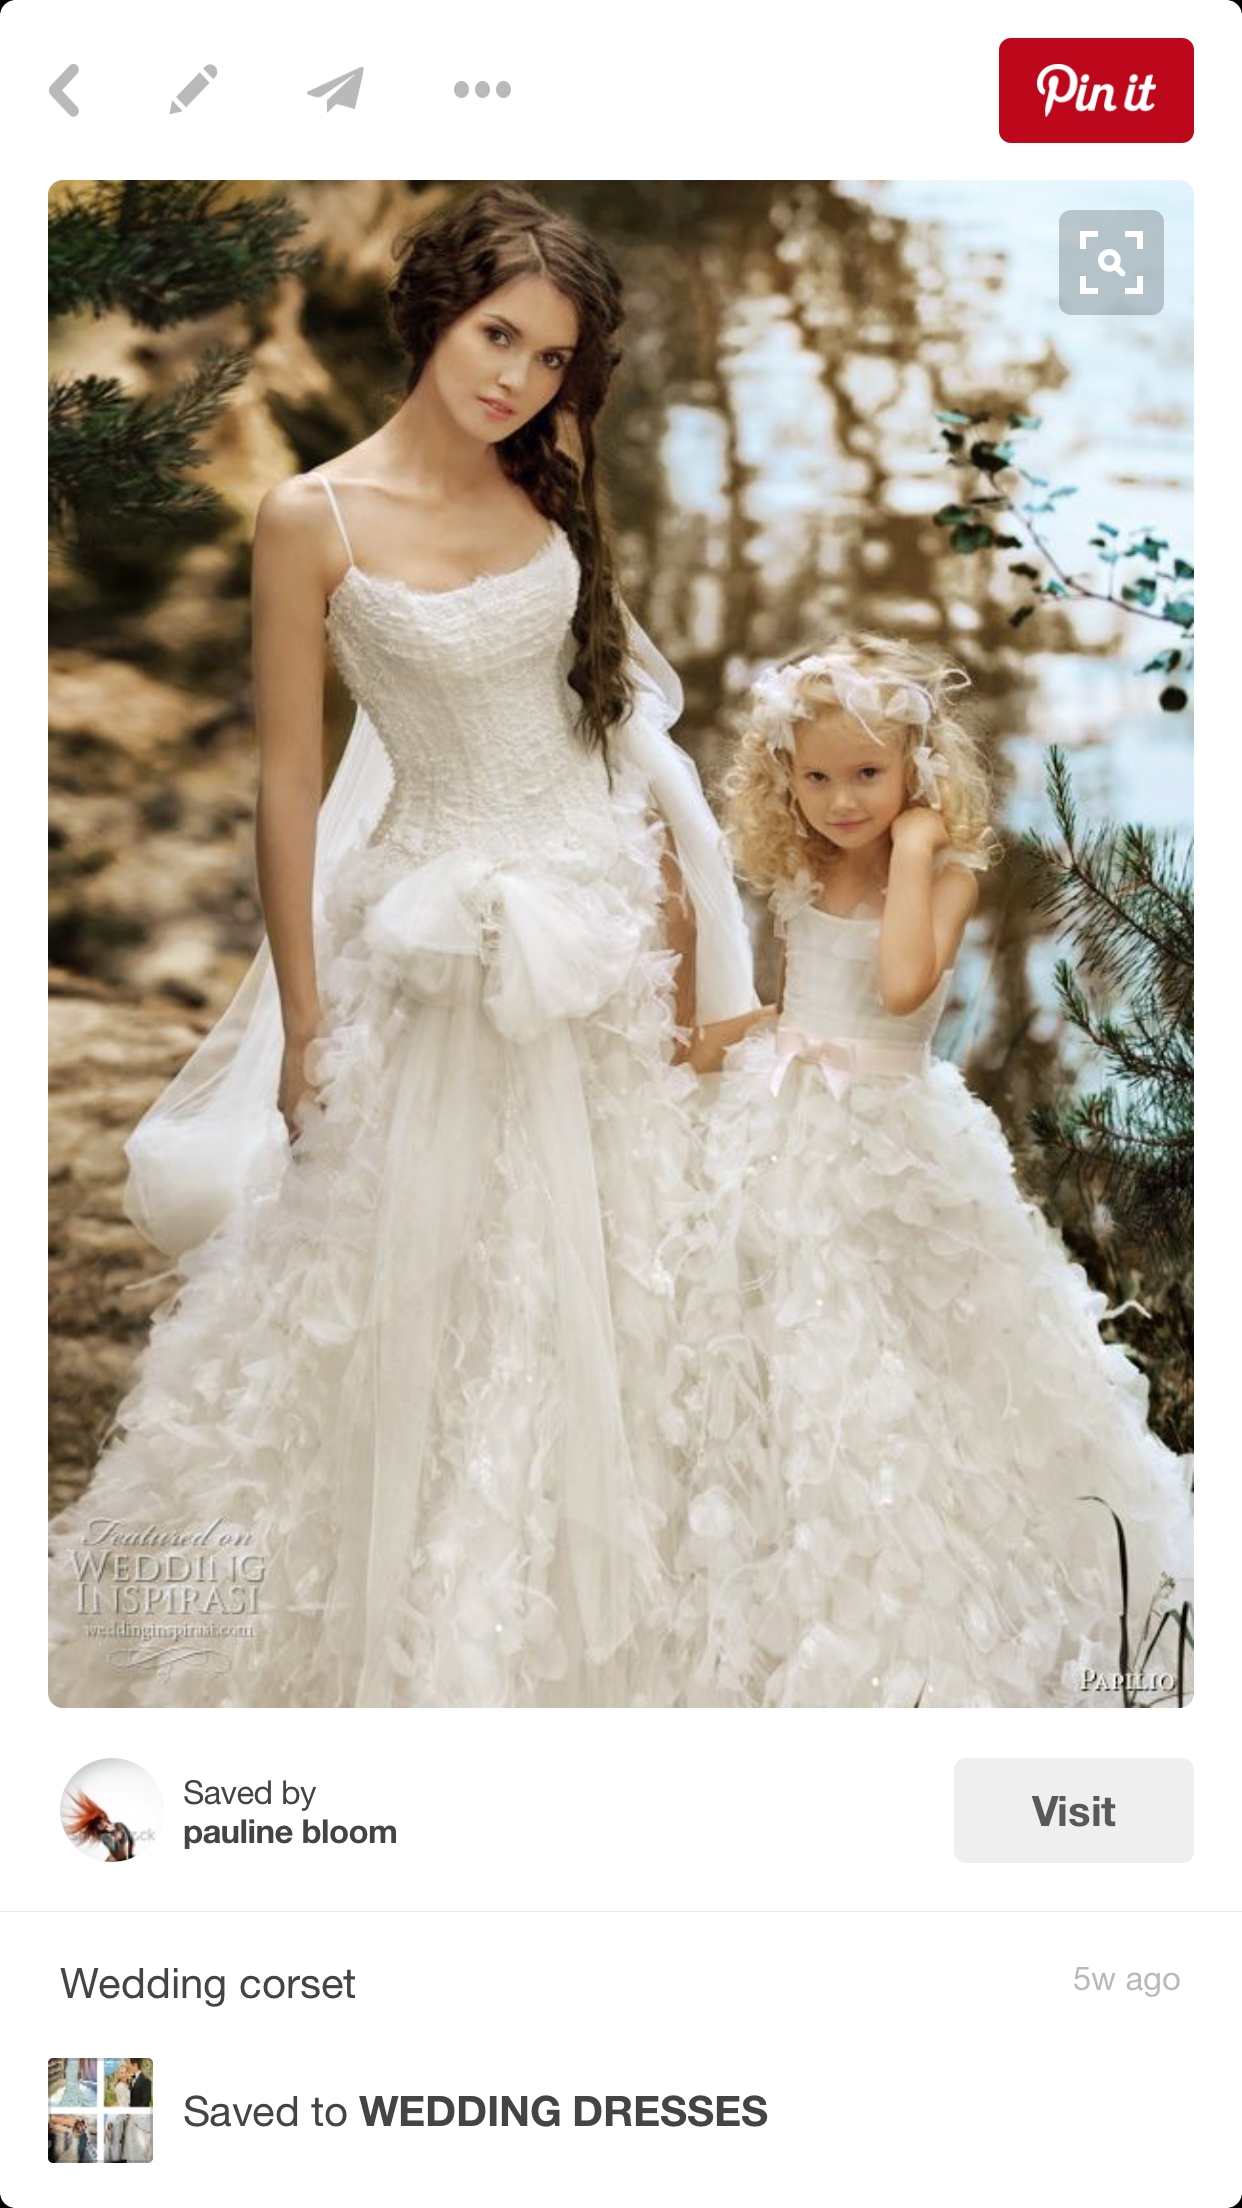 Girls wedding dress  Pin by pauline bloom on WEDDING DRESSES  Pinterest  Wedding dress